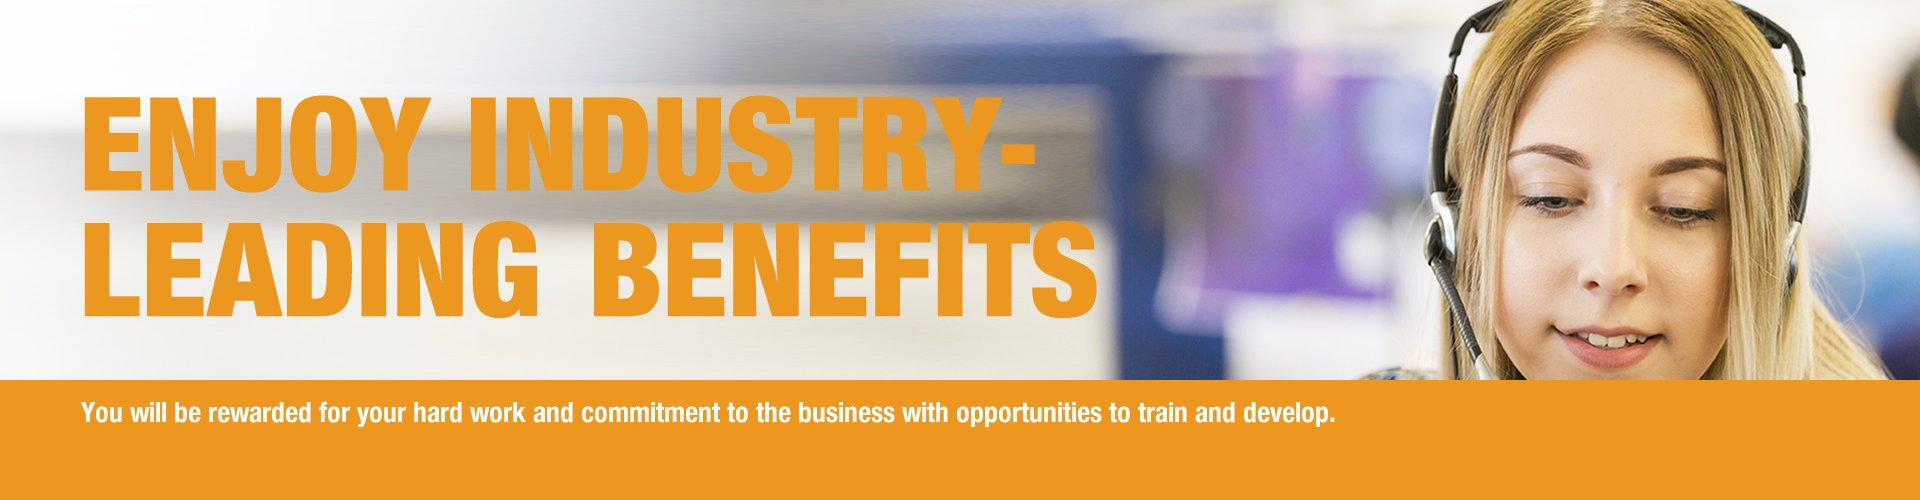 Damart industry leading benefits